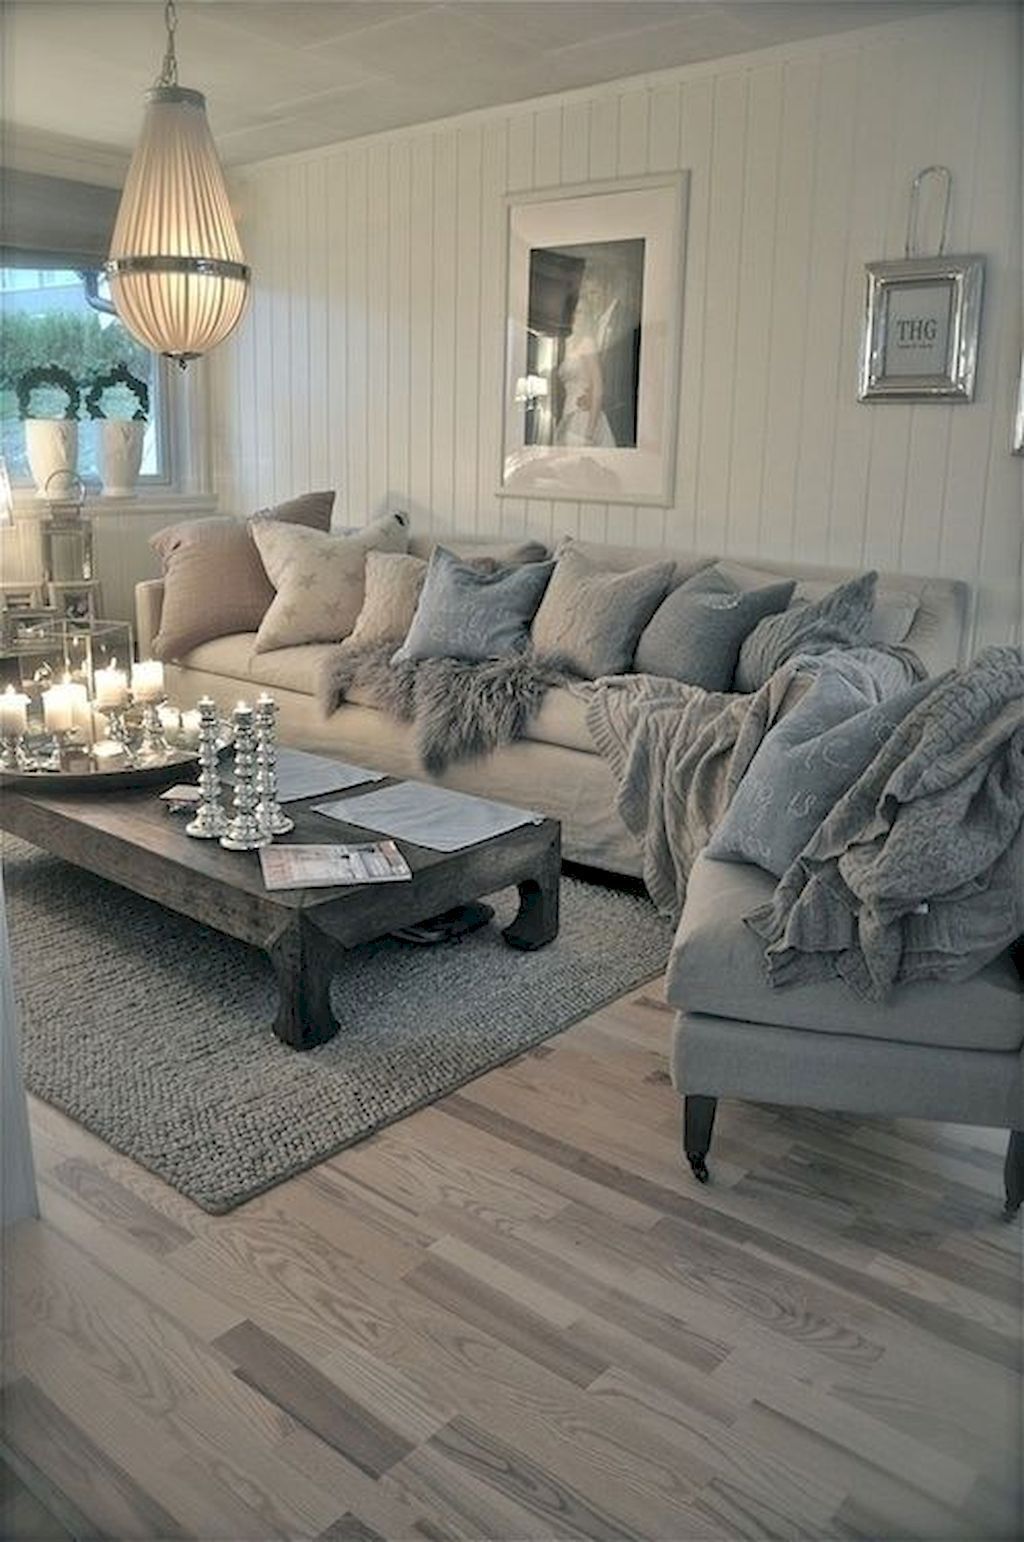 Pin By Besideroom On Living Room Ideas: 18 Beautiful French Country Living Room Decor Ideas